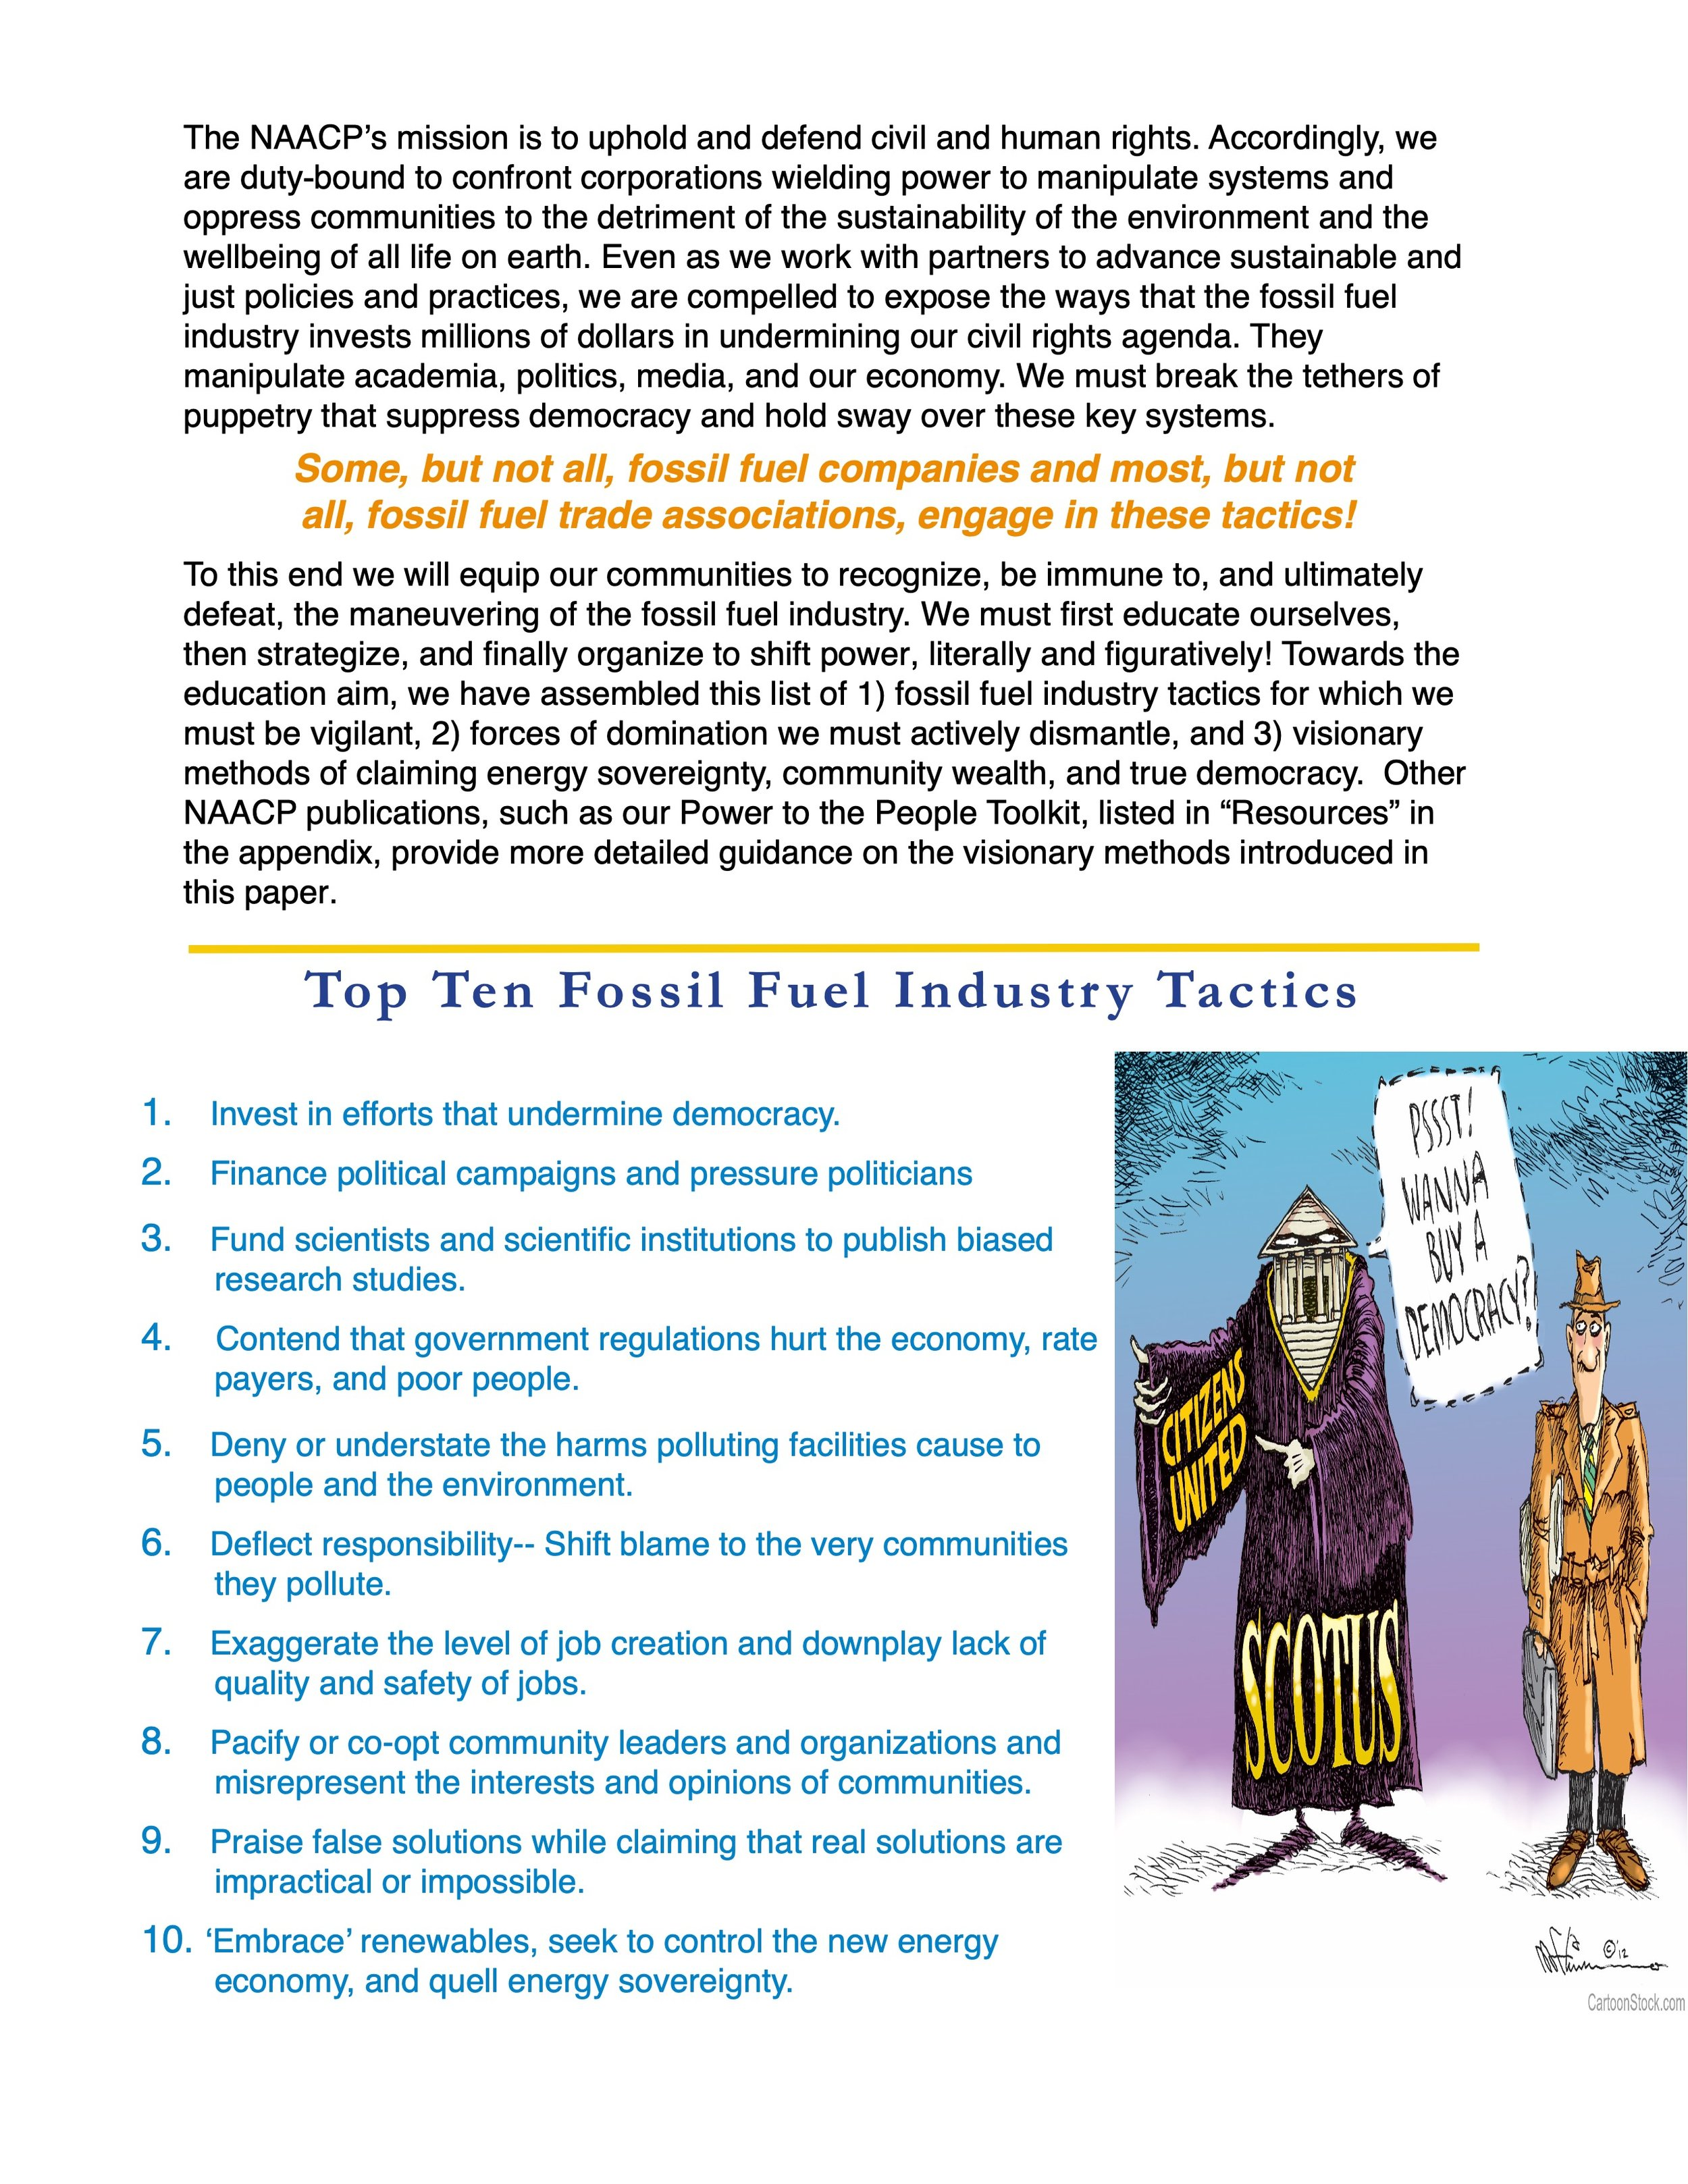 Fossil-Fueled-Foolery-An-Illustrated-Primer-on-the-Top-10-Manipulation-Tactics-of-the-Fossil-Fuel-Industry 4.jpeg